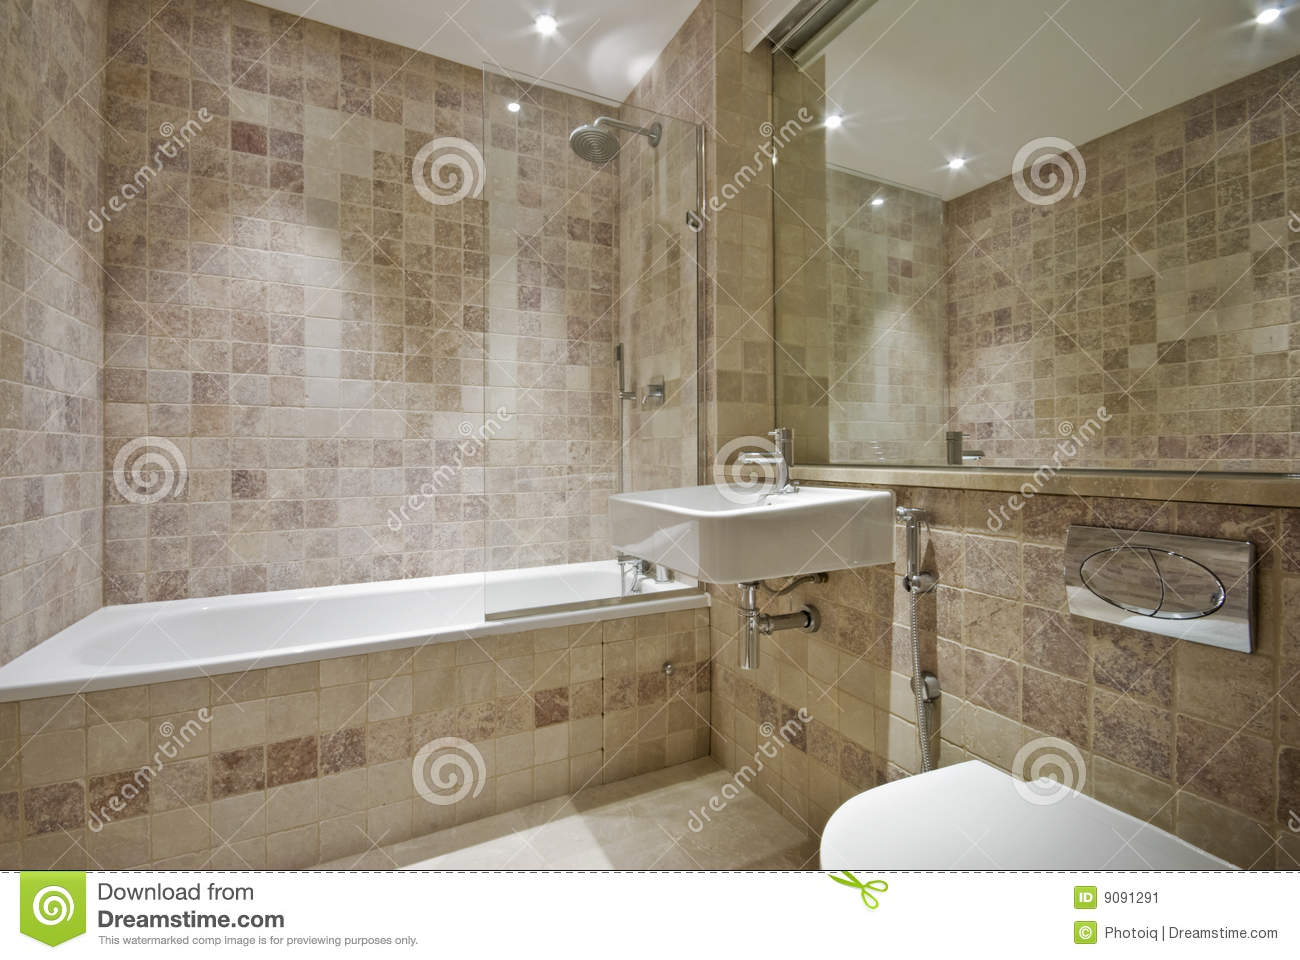 Royalty Free Stock Photo. Download Contemporary Bathroom With Natural Stone  Tiles ... Part 42